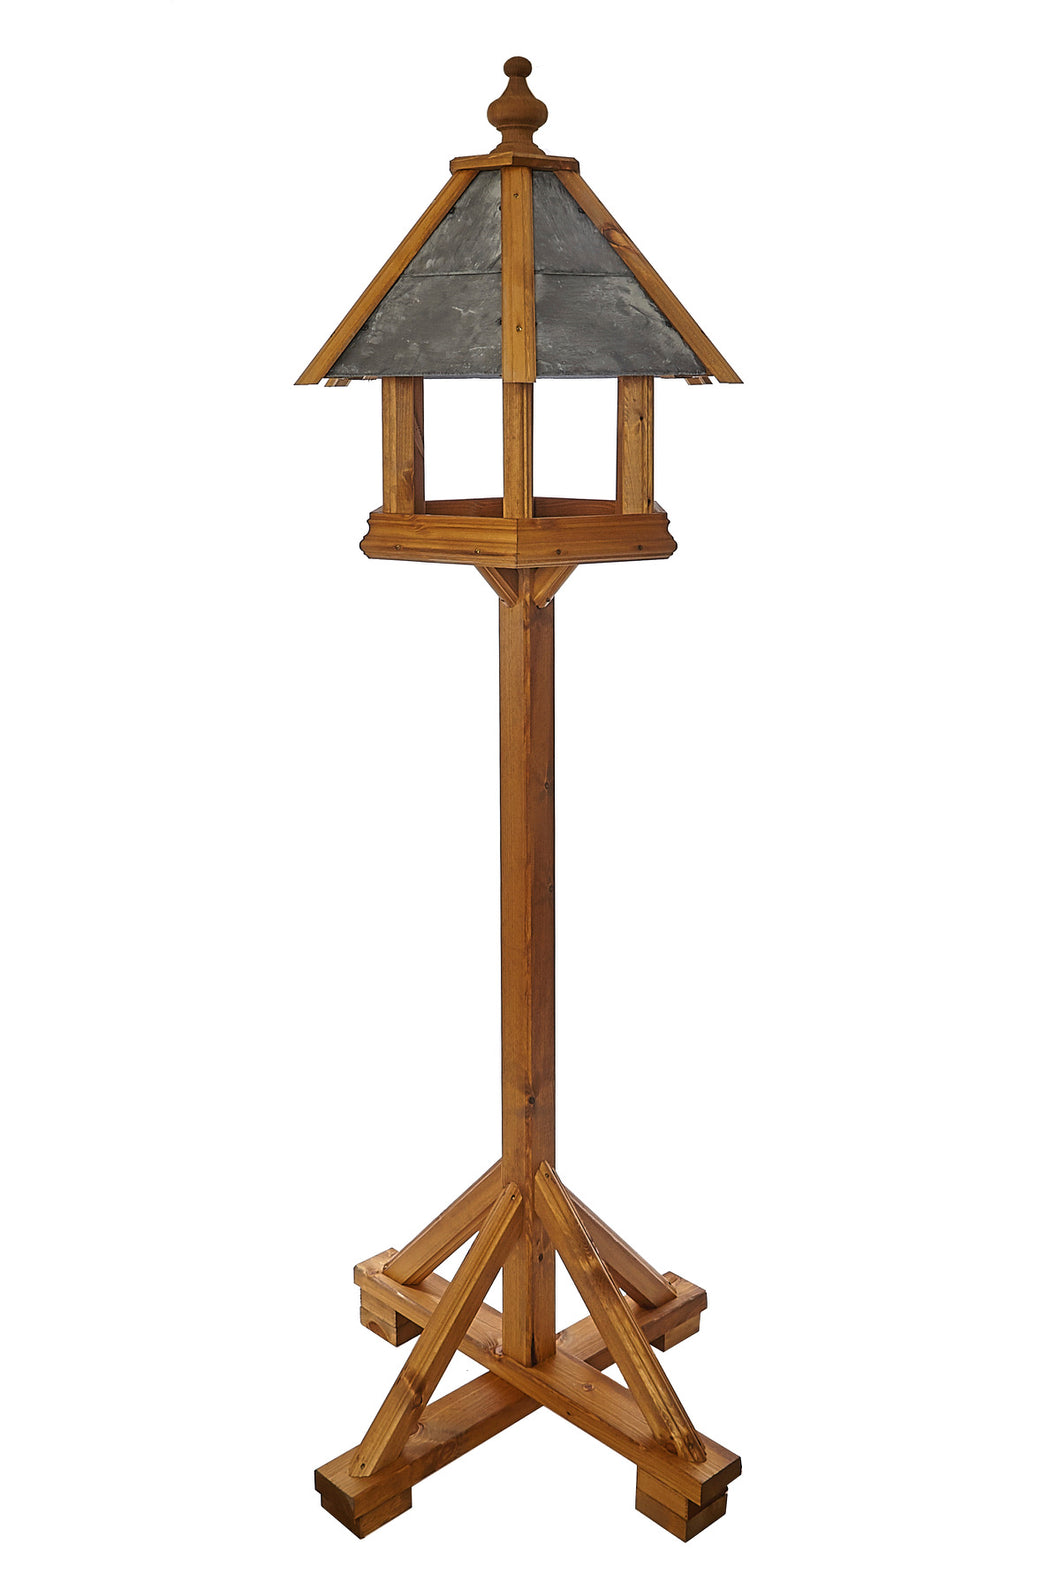 Rosedale - Prestige Slate Roof bird Table